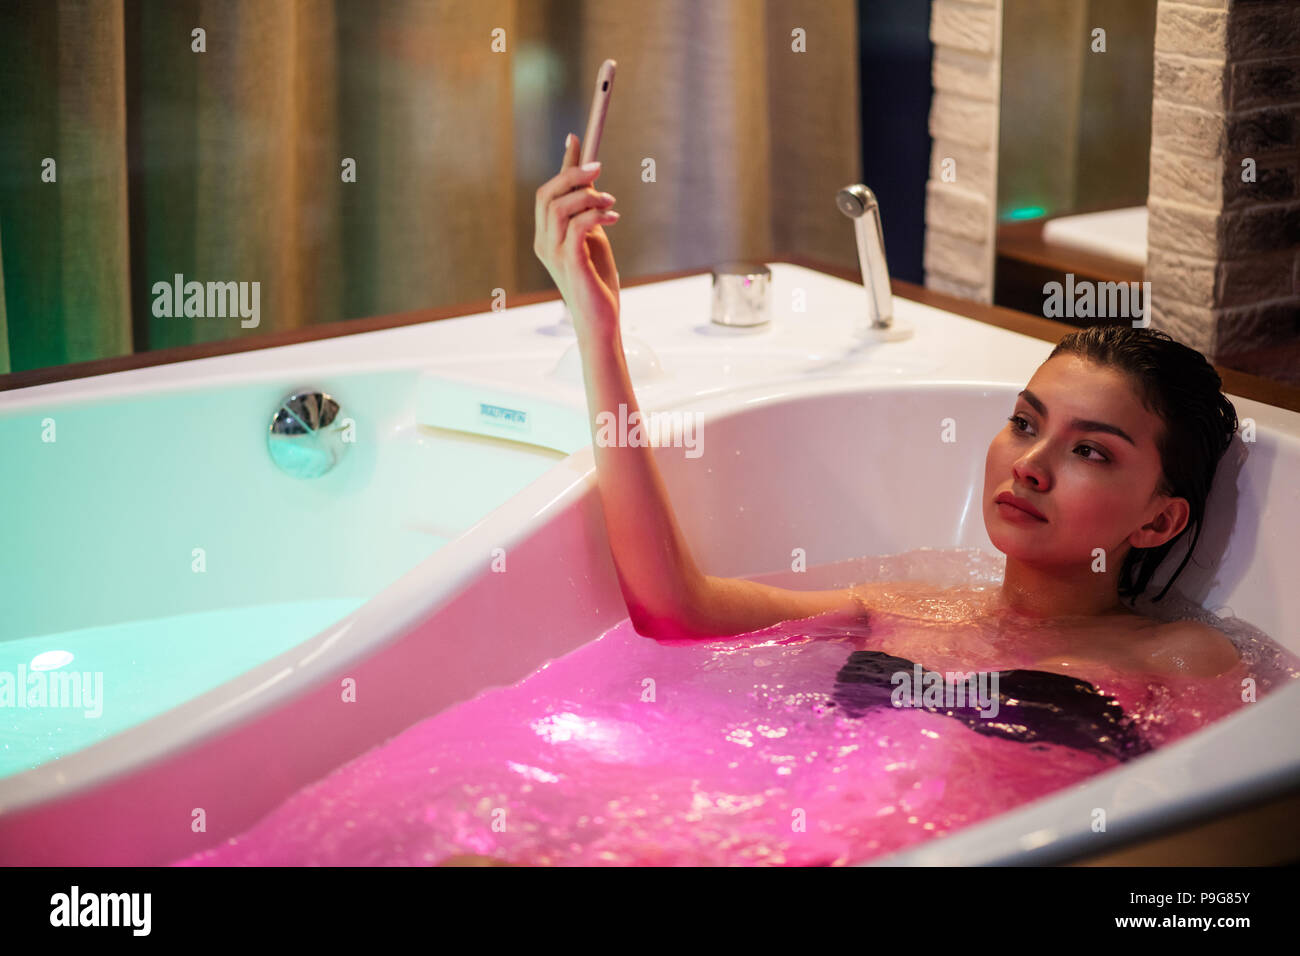 Woman having bath with color therapy and taking photo. taking selfy in the modern bath with light - Stock Image